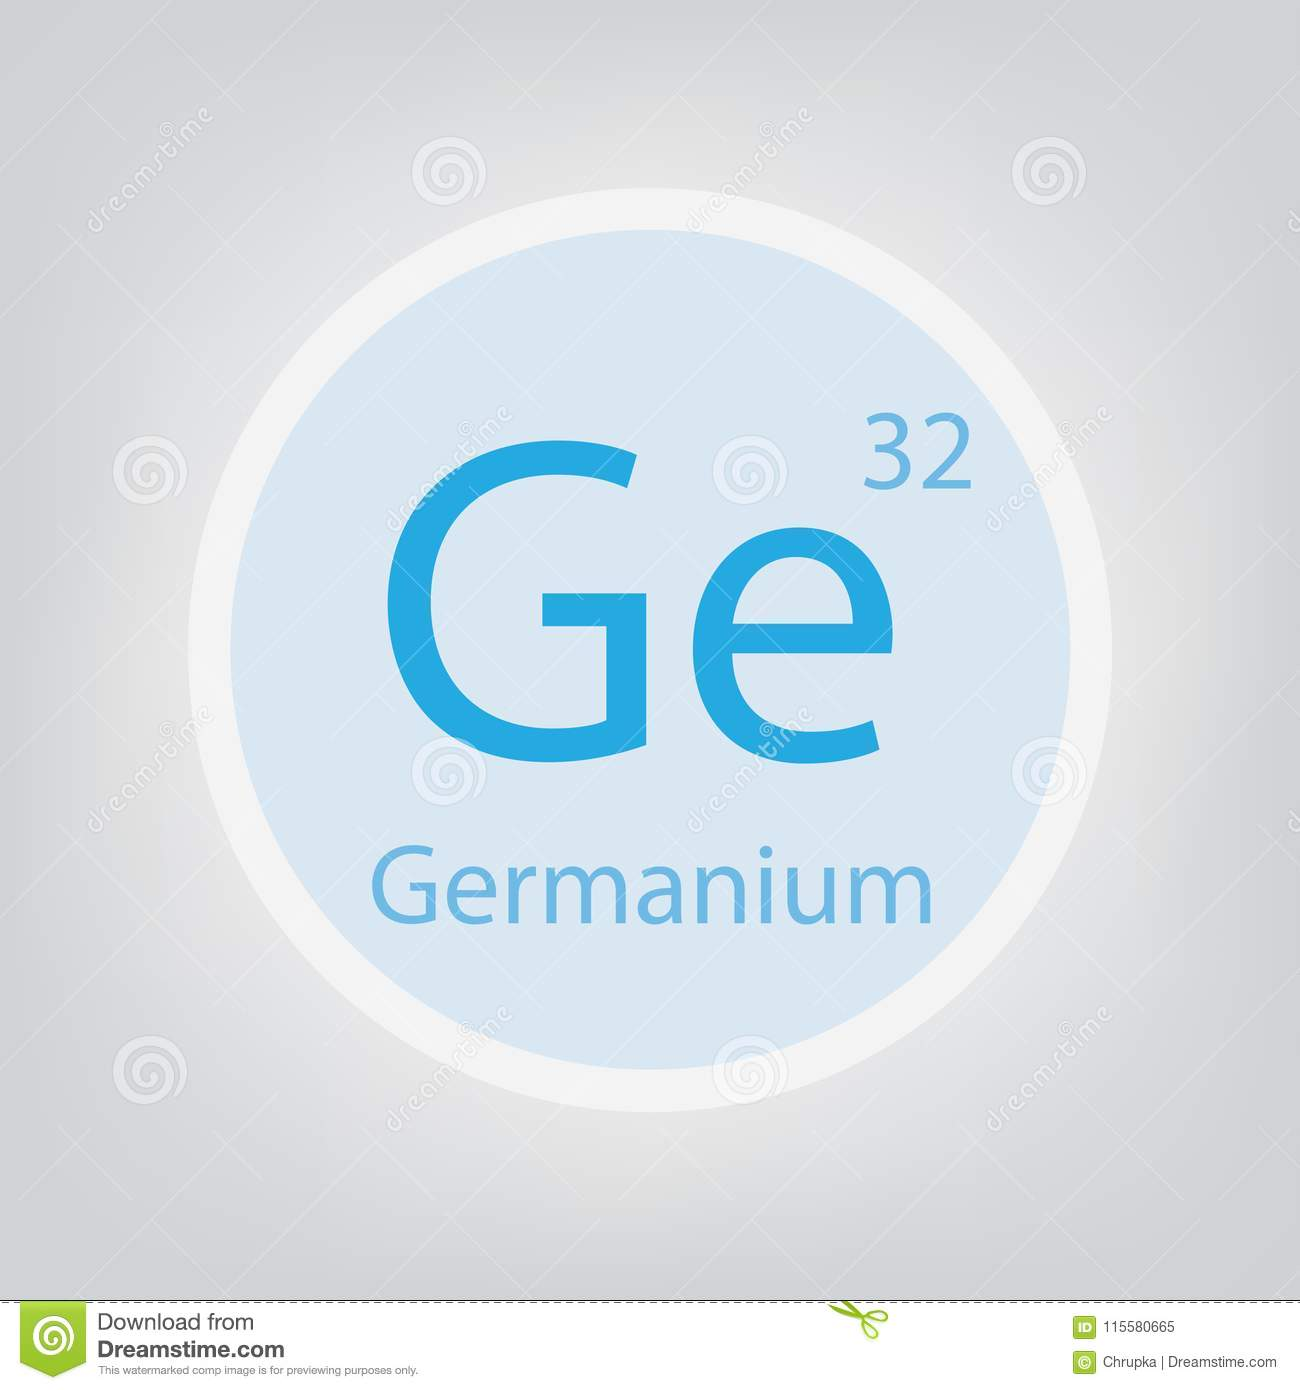 Germanium Ge Chemical Element Icon Stock Vector Illustration Of